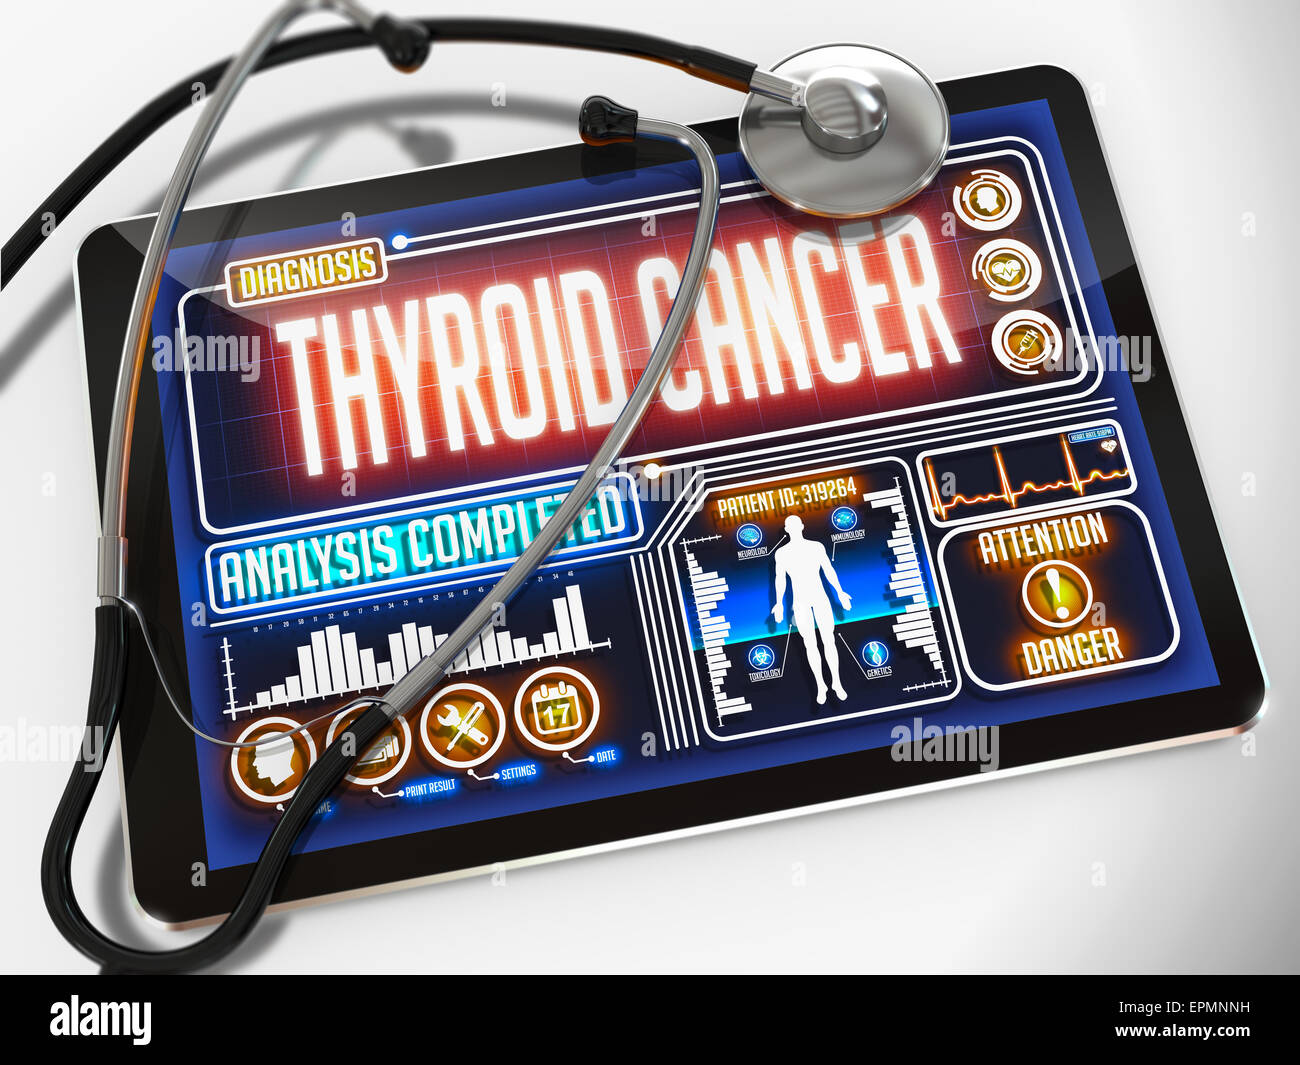 Thyroid Cancer - Diagnosis on the Display of Medical Tablet and a Black Stethoscope on White Background. - Stock Image